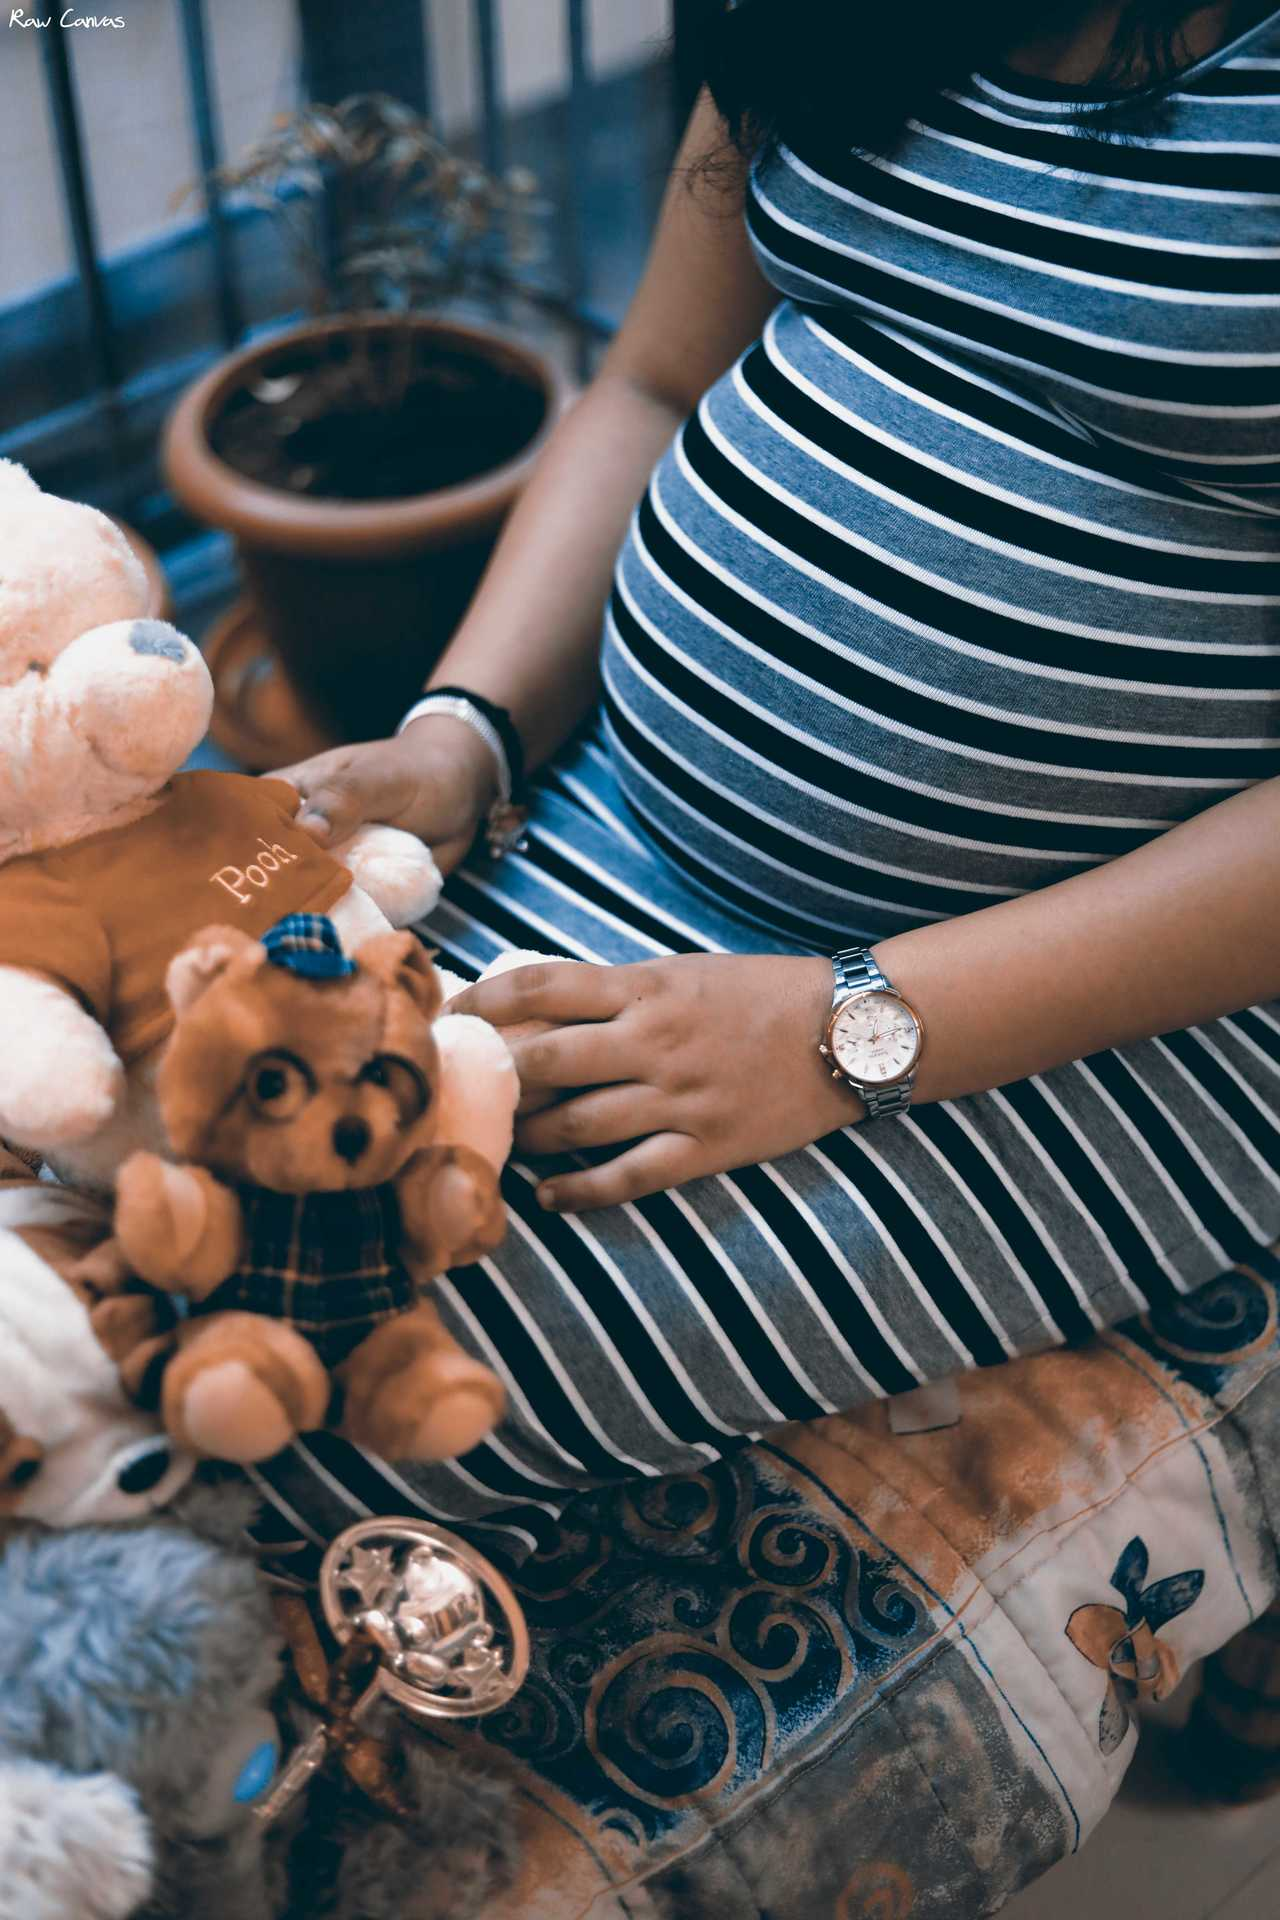 Motherhood Stories from the 2020 Pandemic image